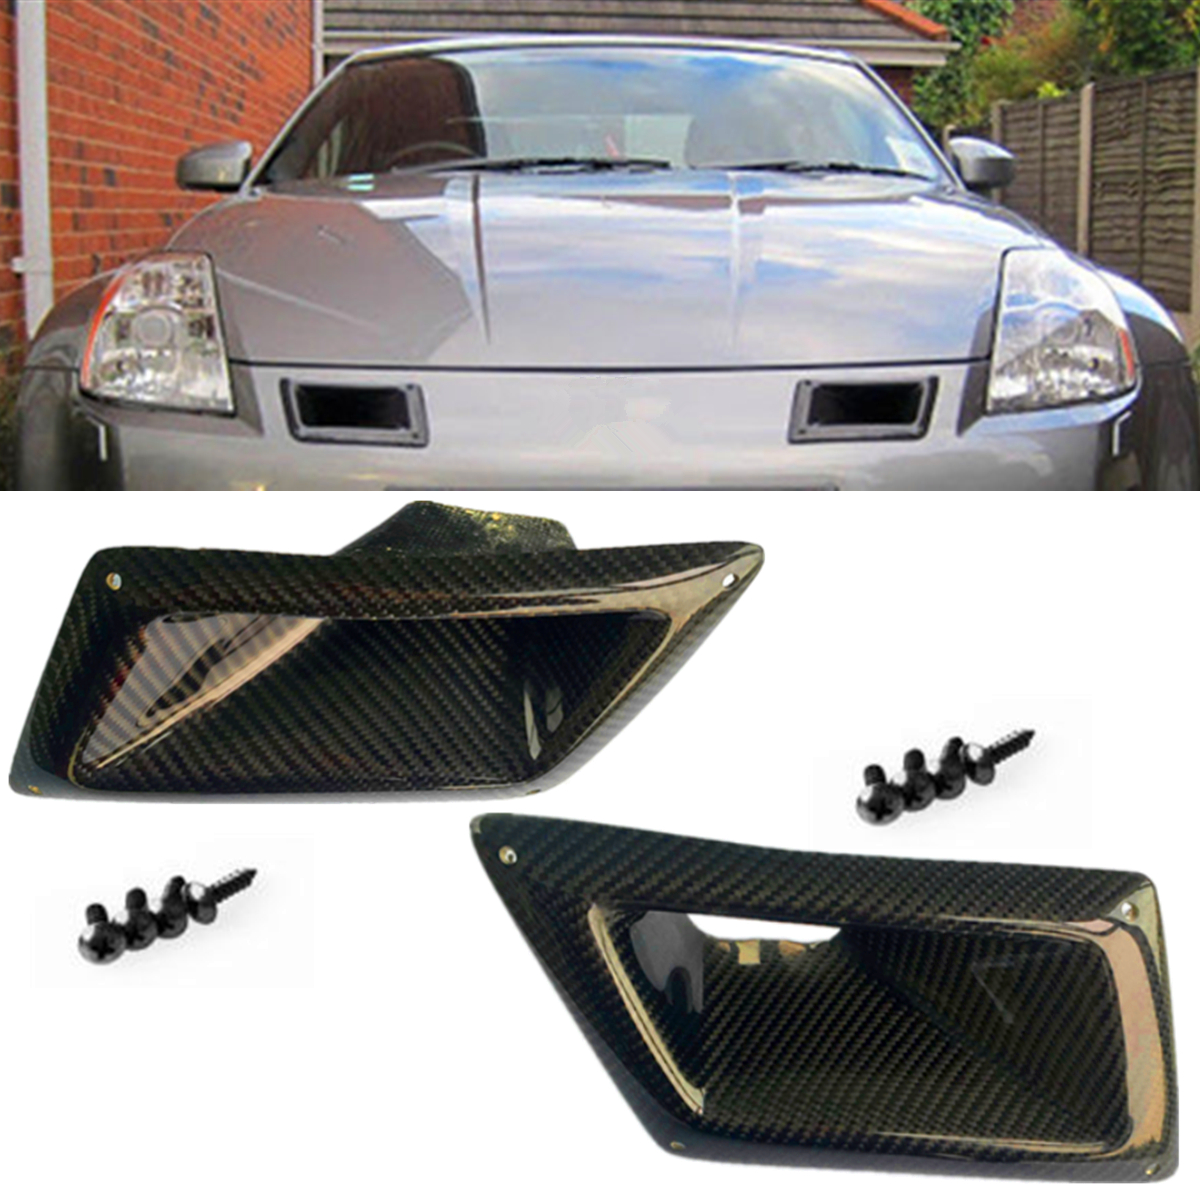 1Pair Carbon Fiber Front Bumper Air Vents Cover Trim Ducts Intake Fit for Nissan 350Z Z33 ND 2003-2009 carbon fiber dial dash cover glossy fibre finish interior accessories trim fit for nissan 350z z33 car styling